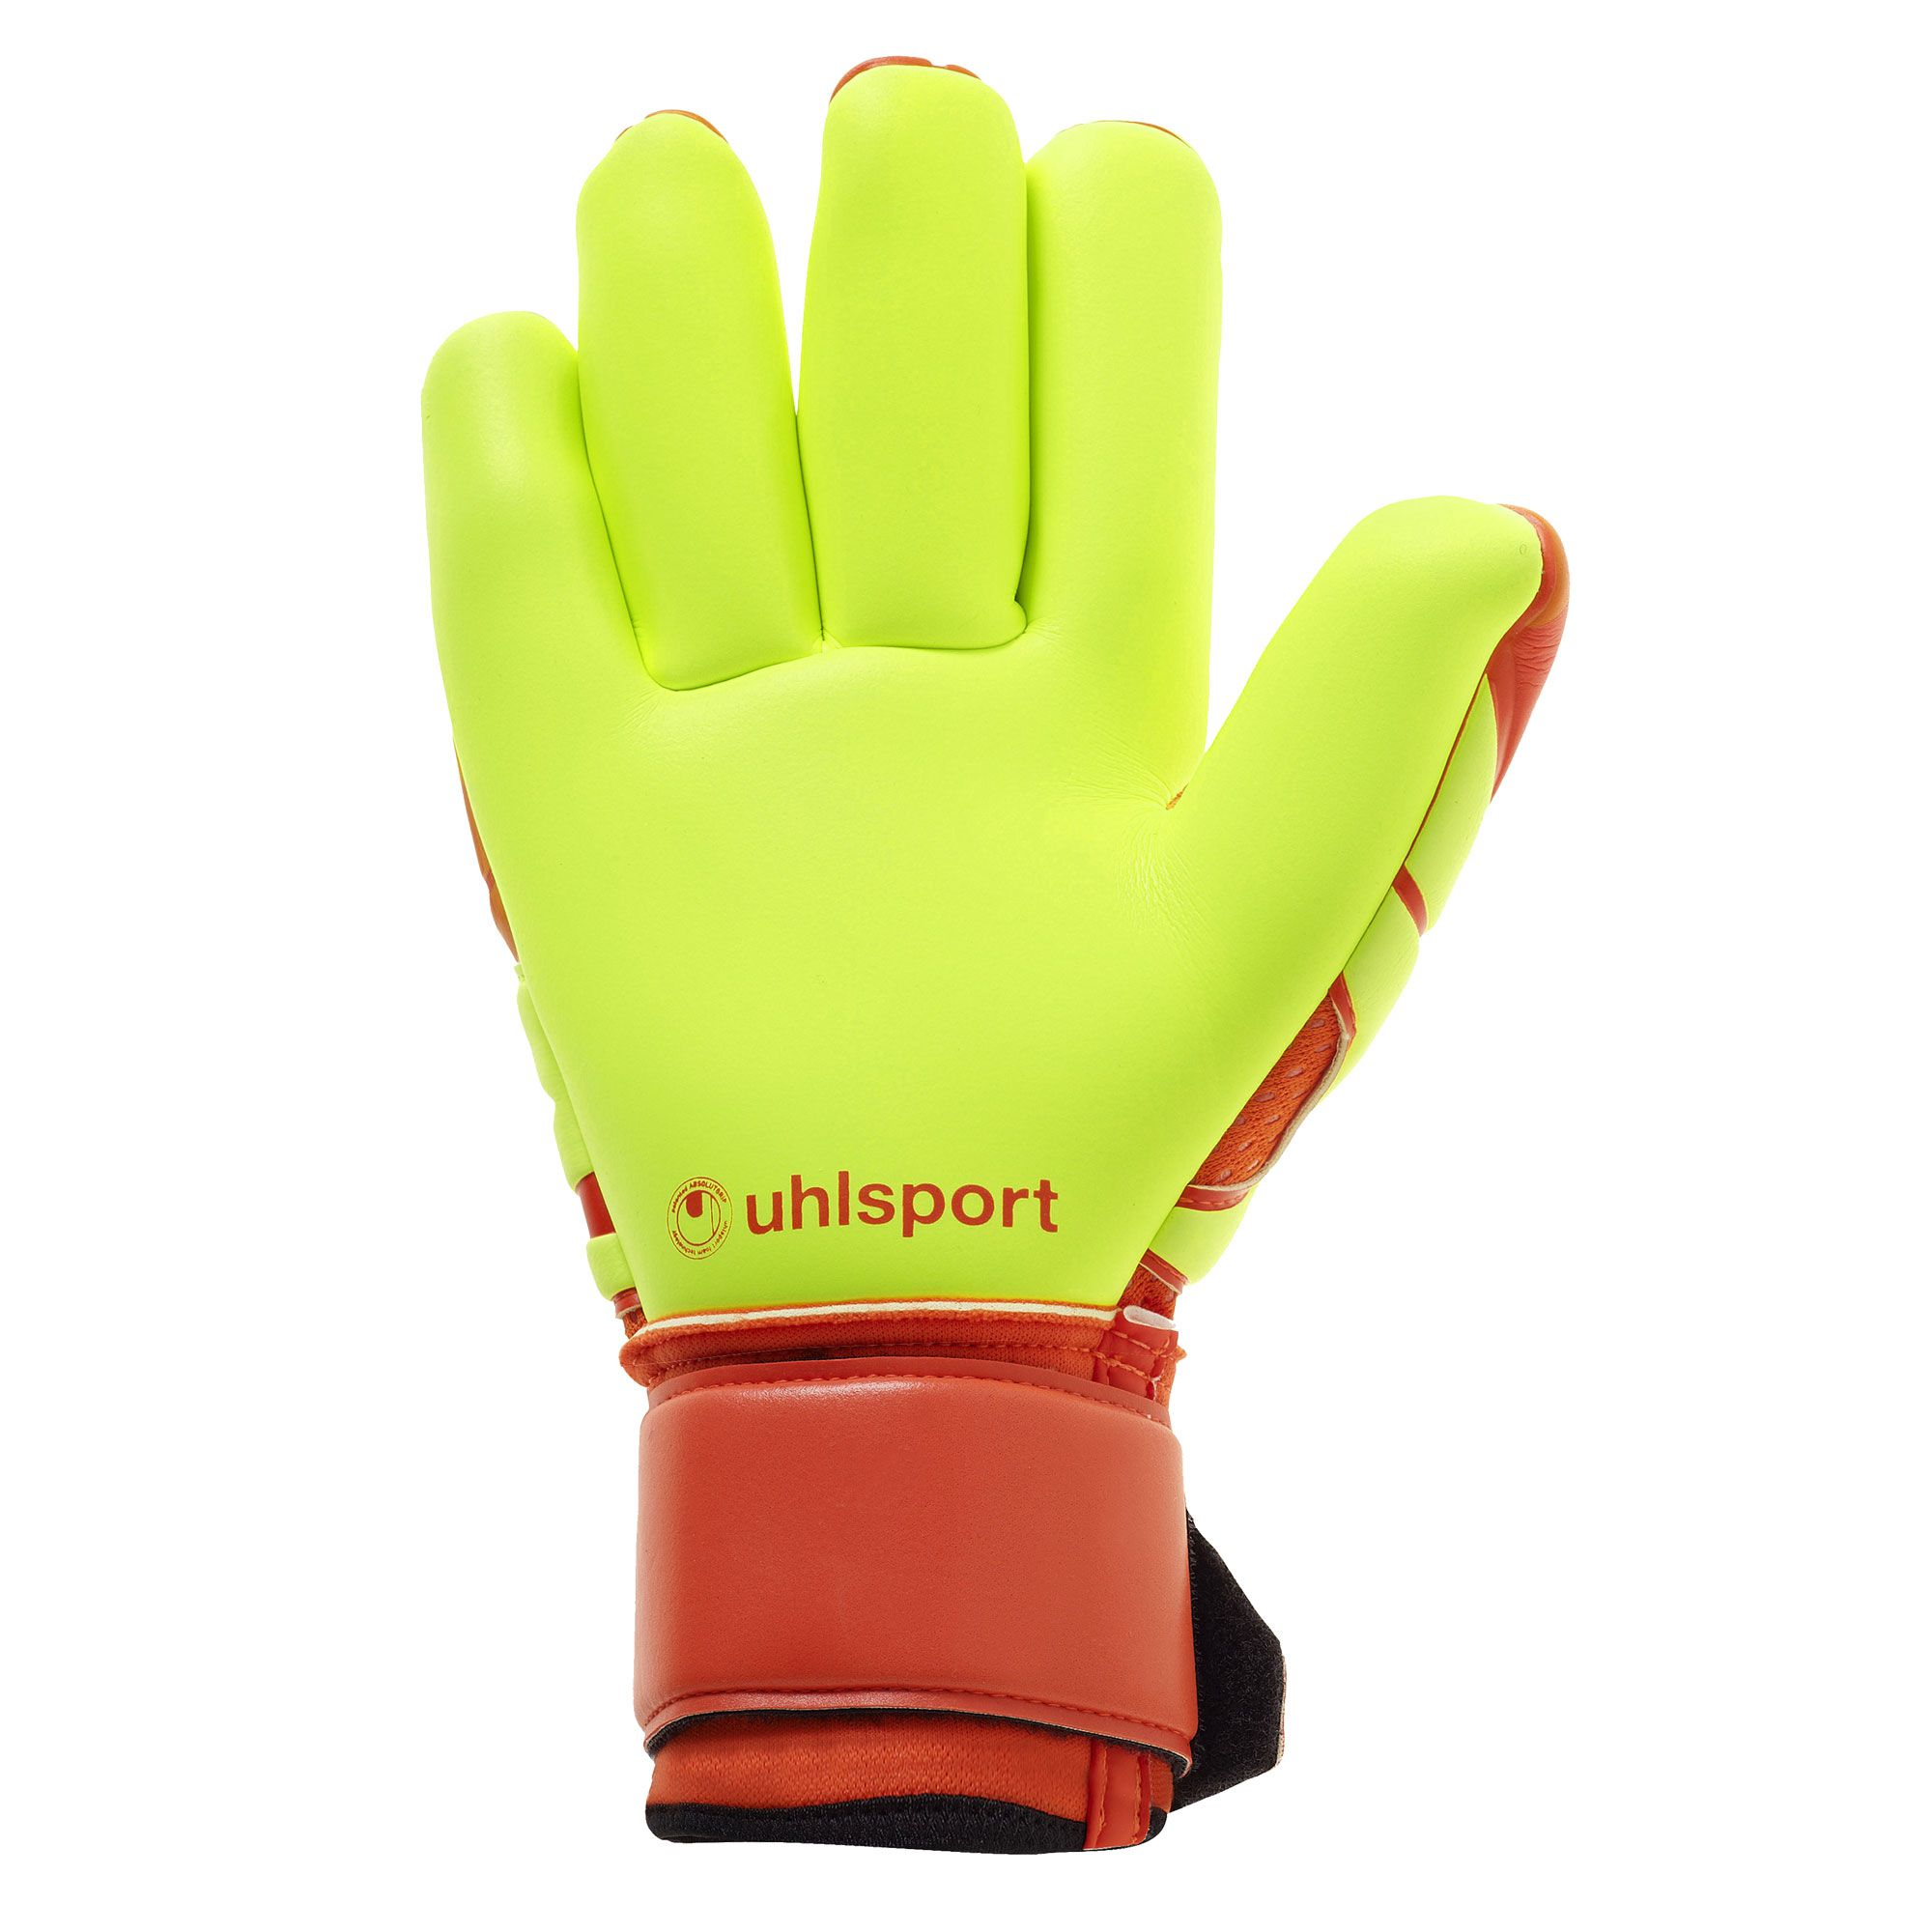 Gants Uhlsport Dynamic Impulse Absolutgrip Fingersurround 2020